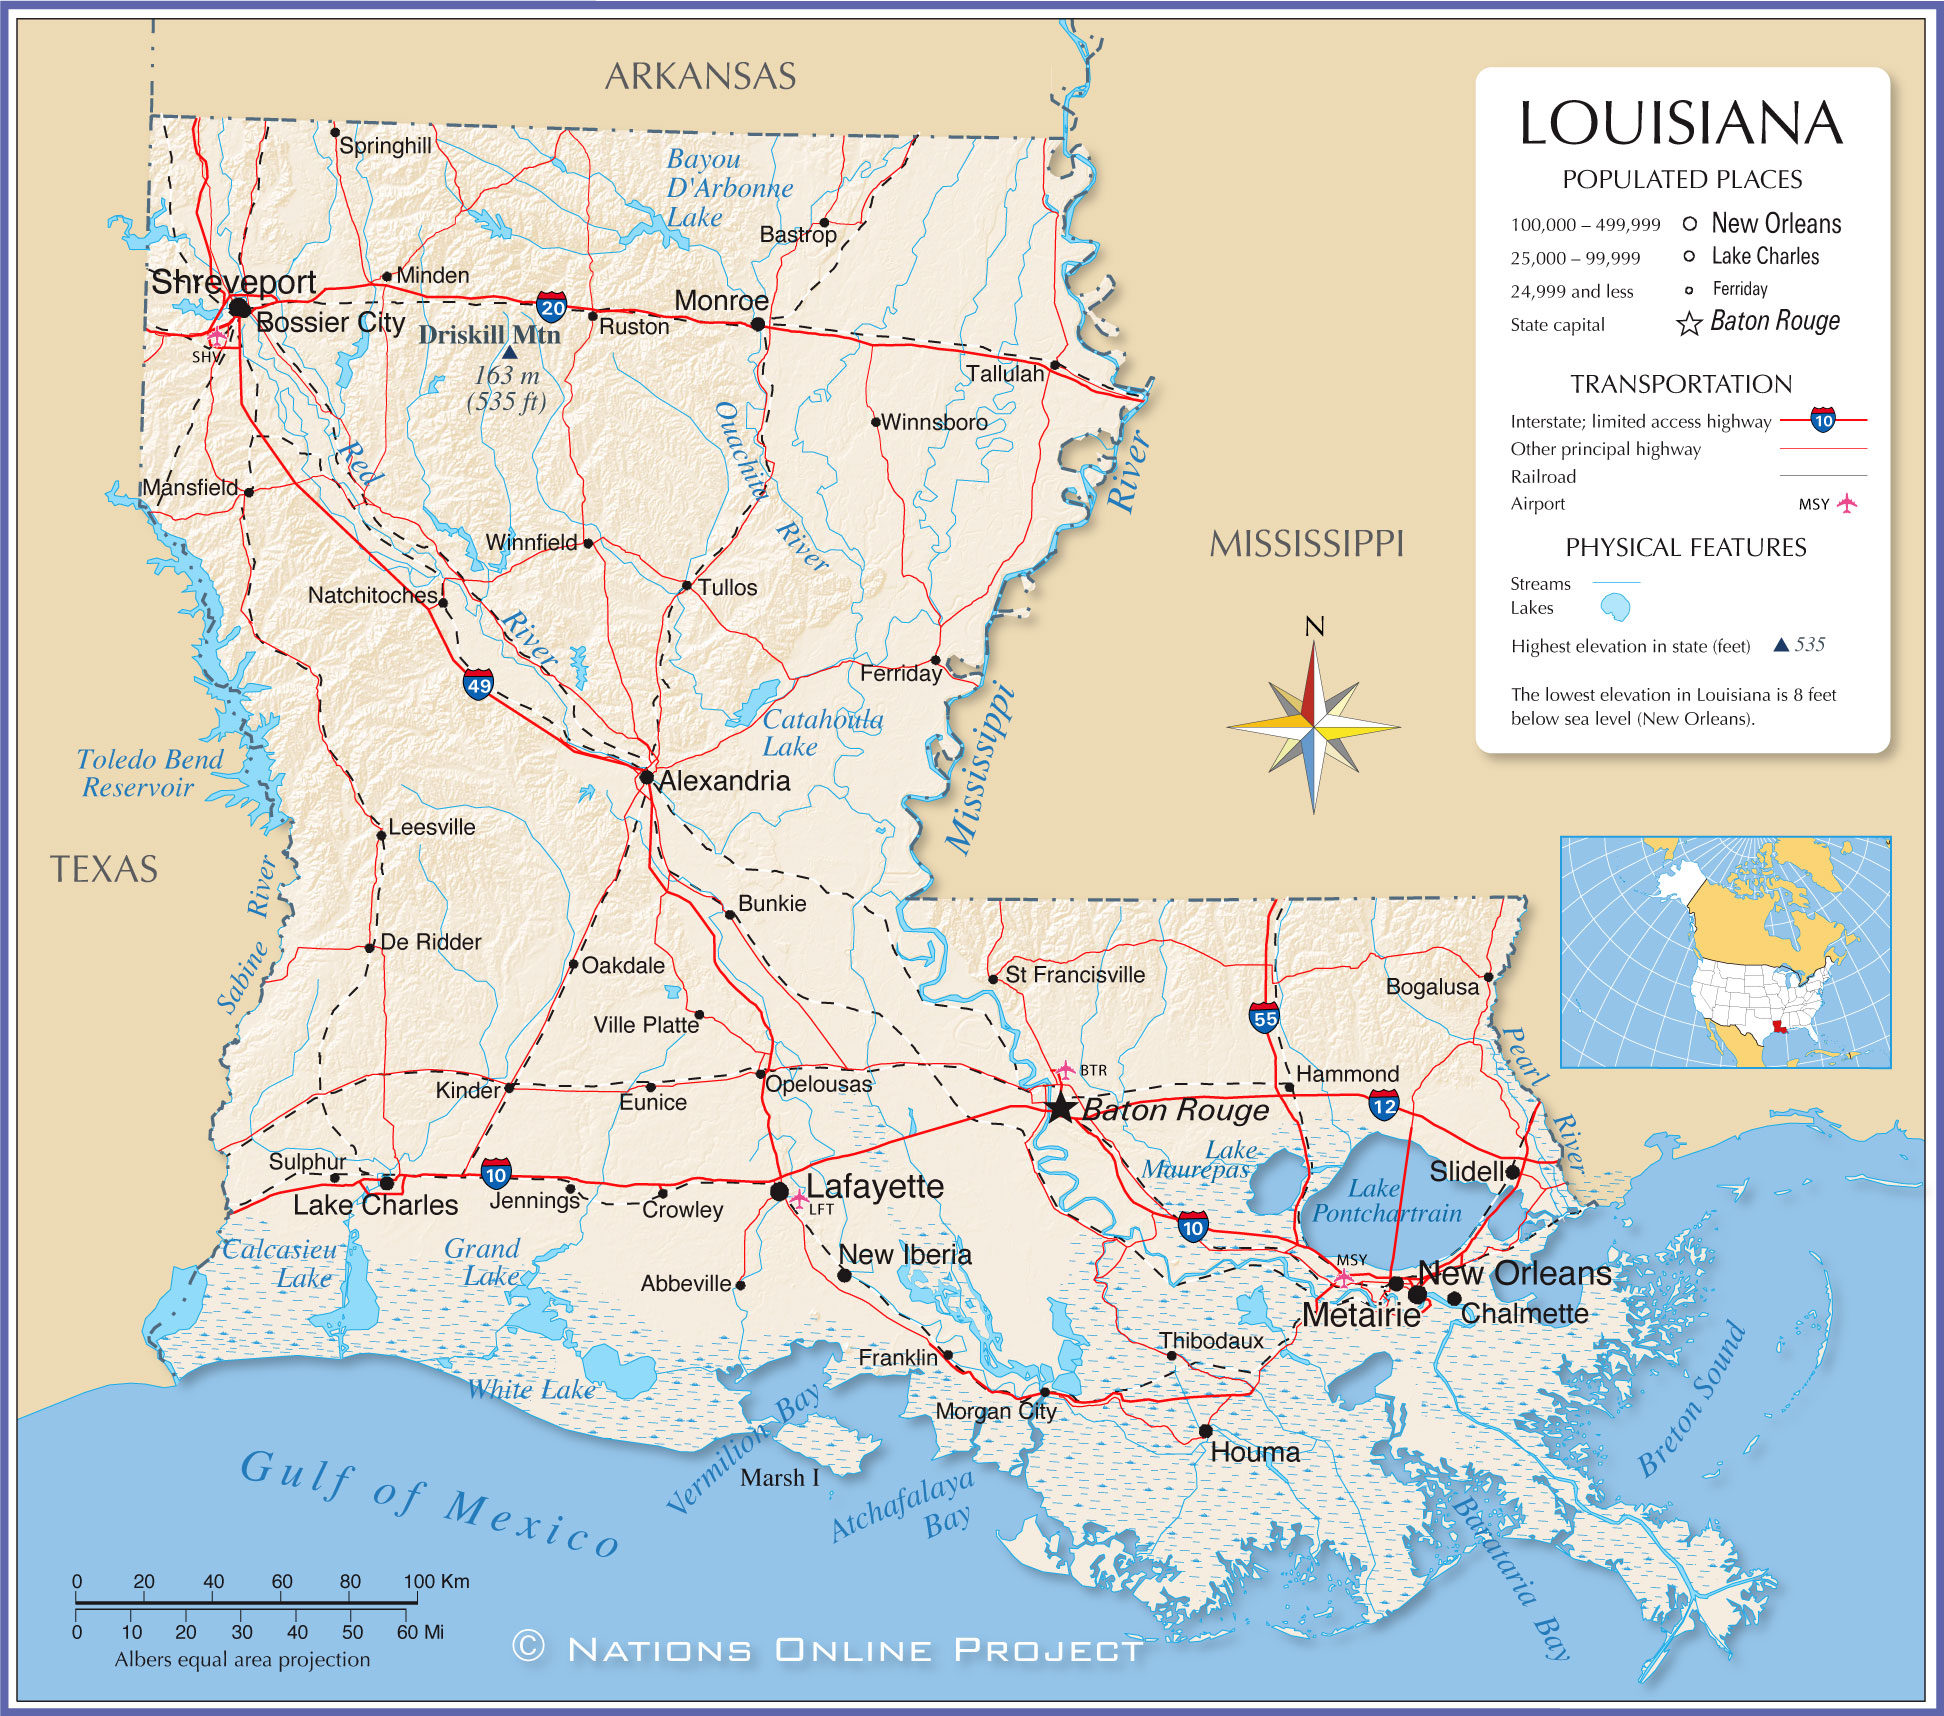 map of louisiana state Map Of The State Of Louisiana Usa Nations Online Project map of louisiana state